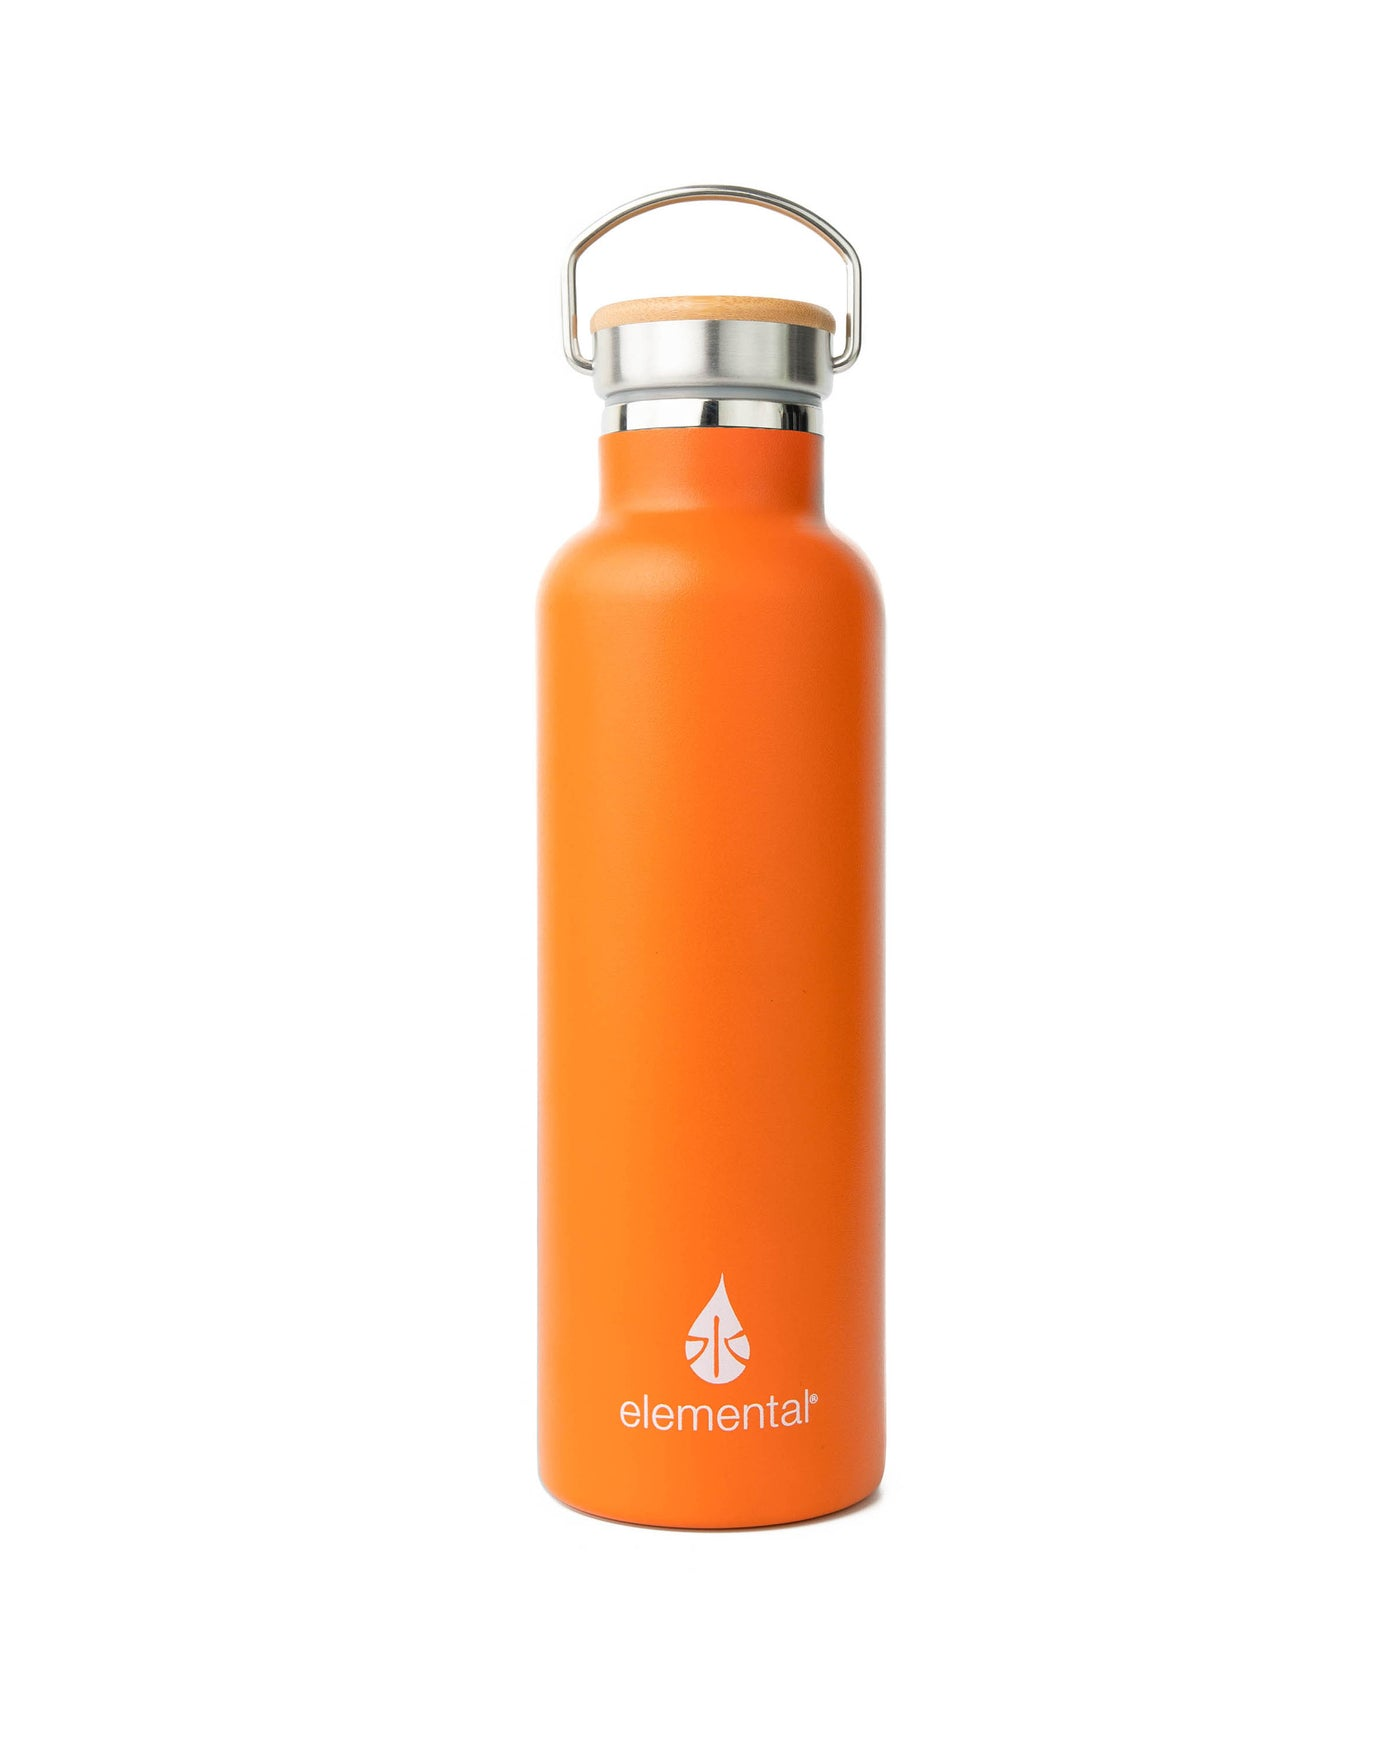 Elemental Stainless Steel Classic Water Bottle - 25oz Orange - Elemental Gifts